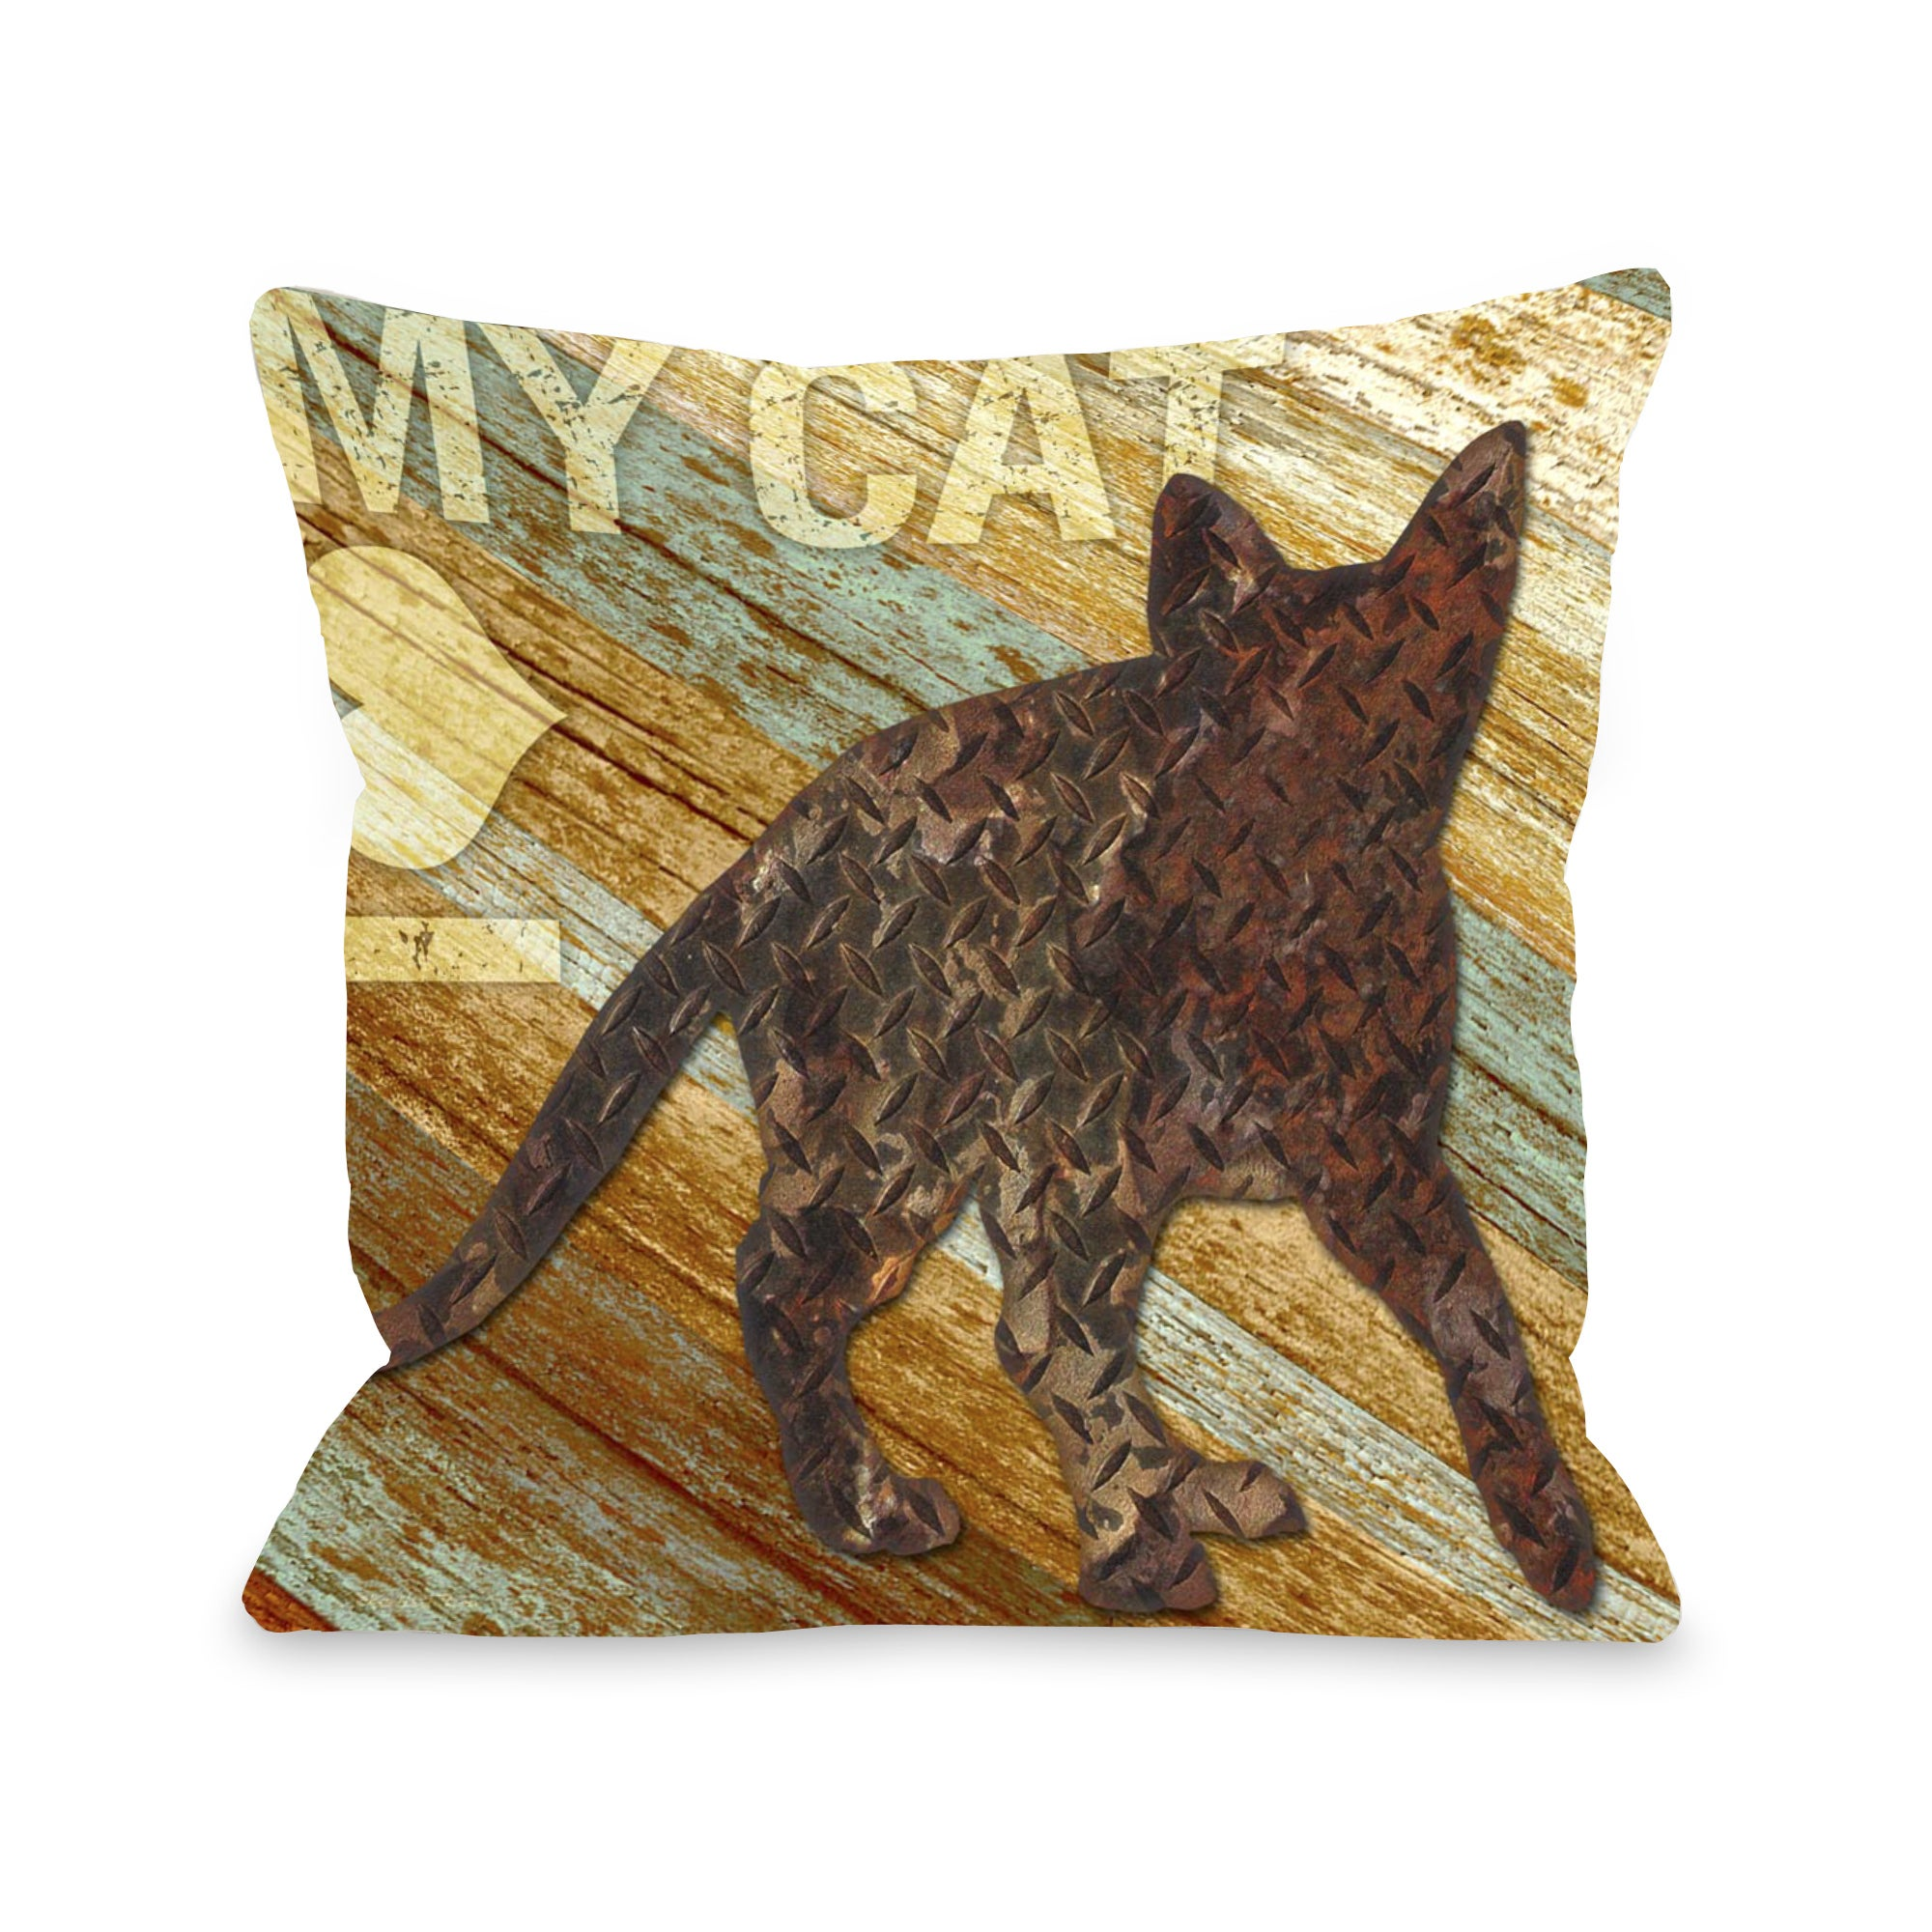 I love my Cat Wood Throw Pillow (Large - 20 x 20)